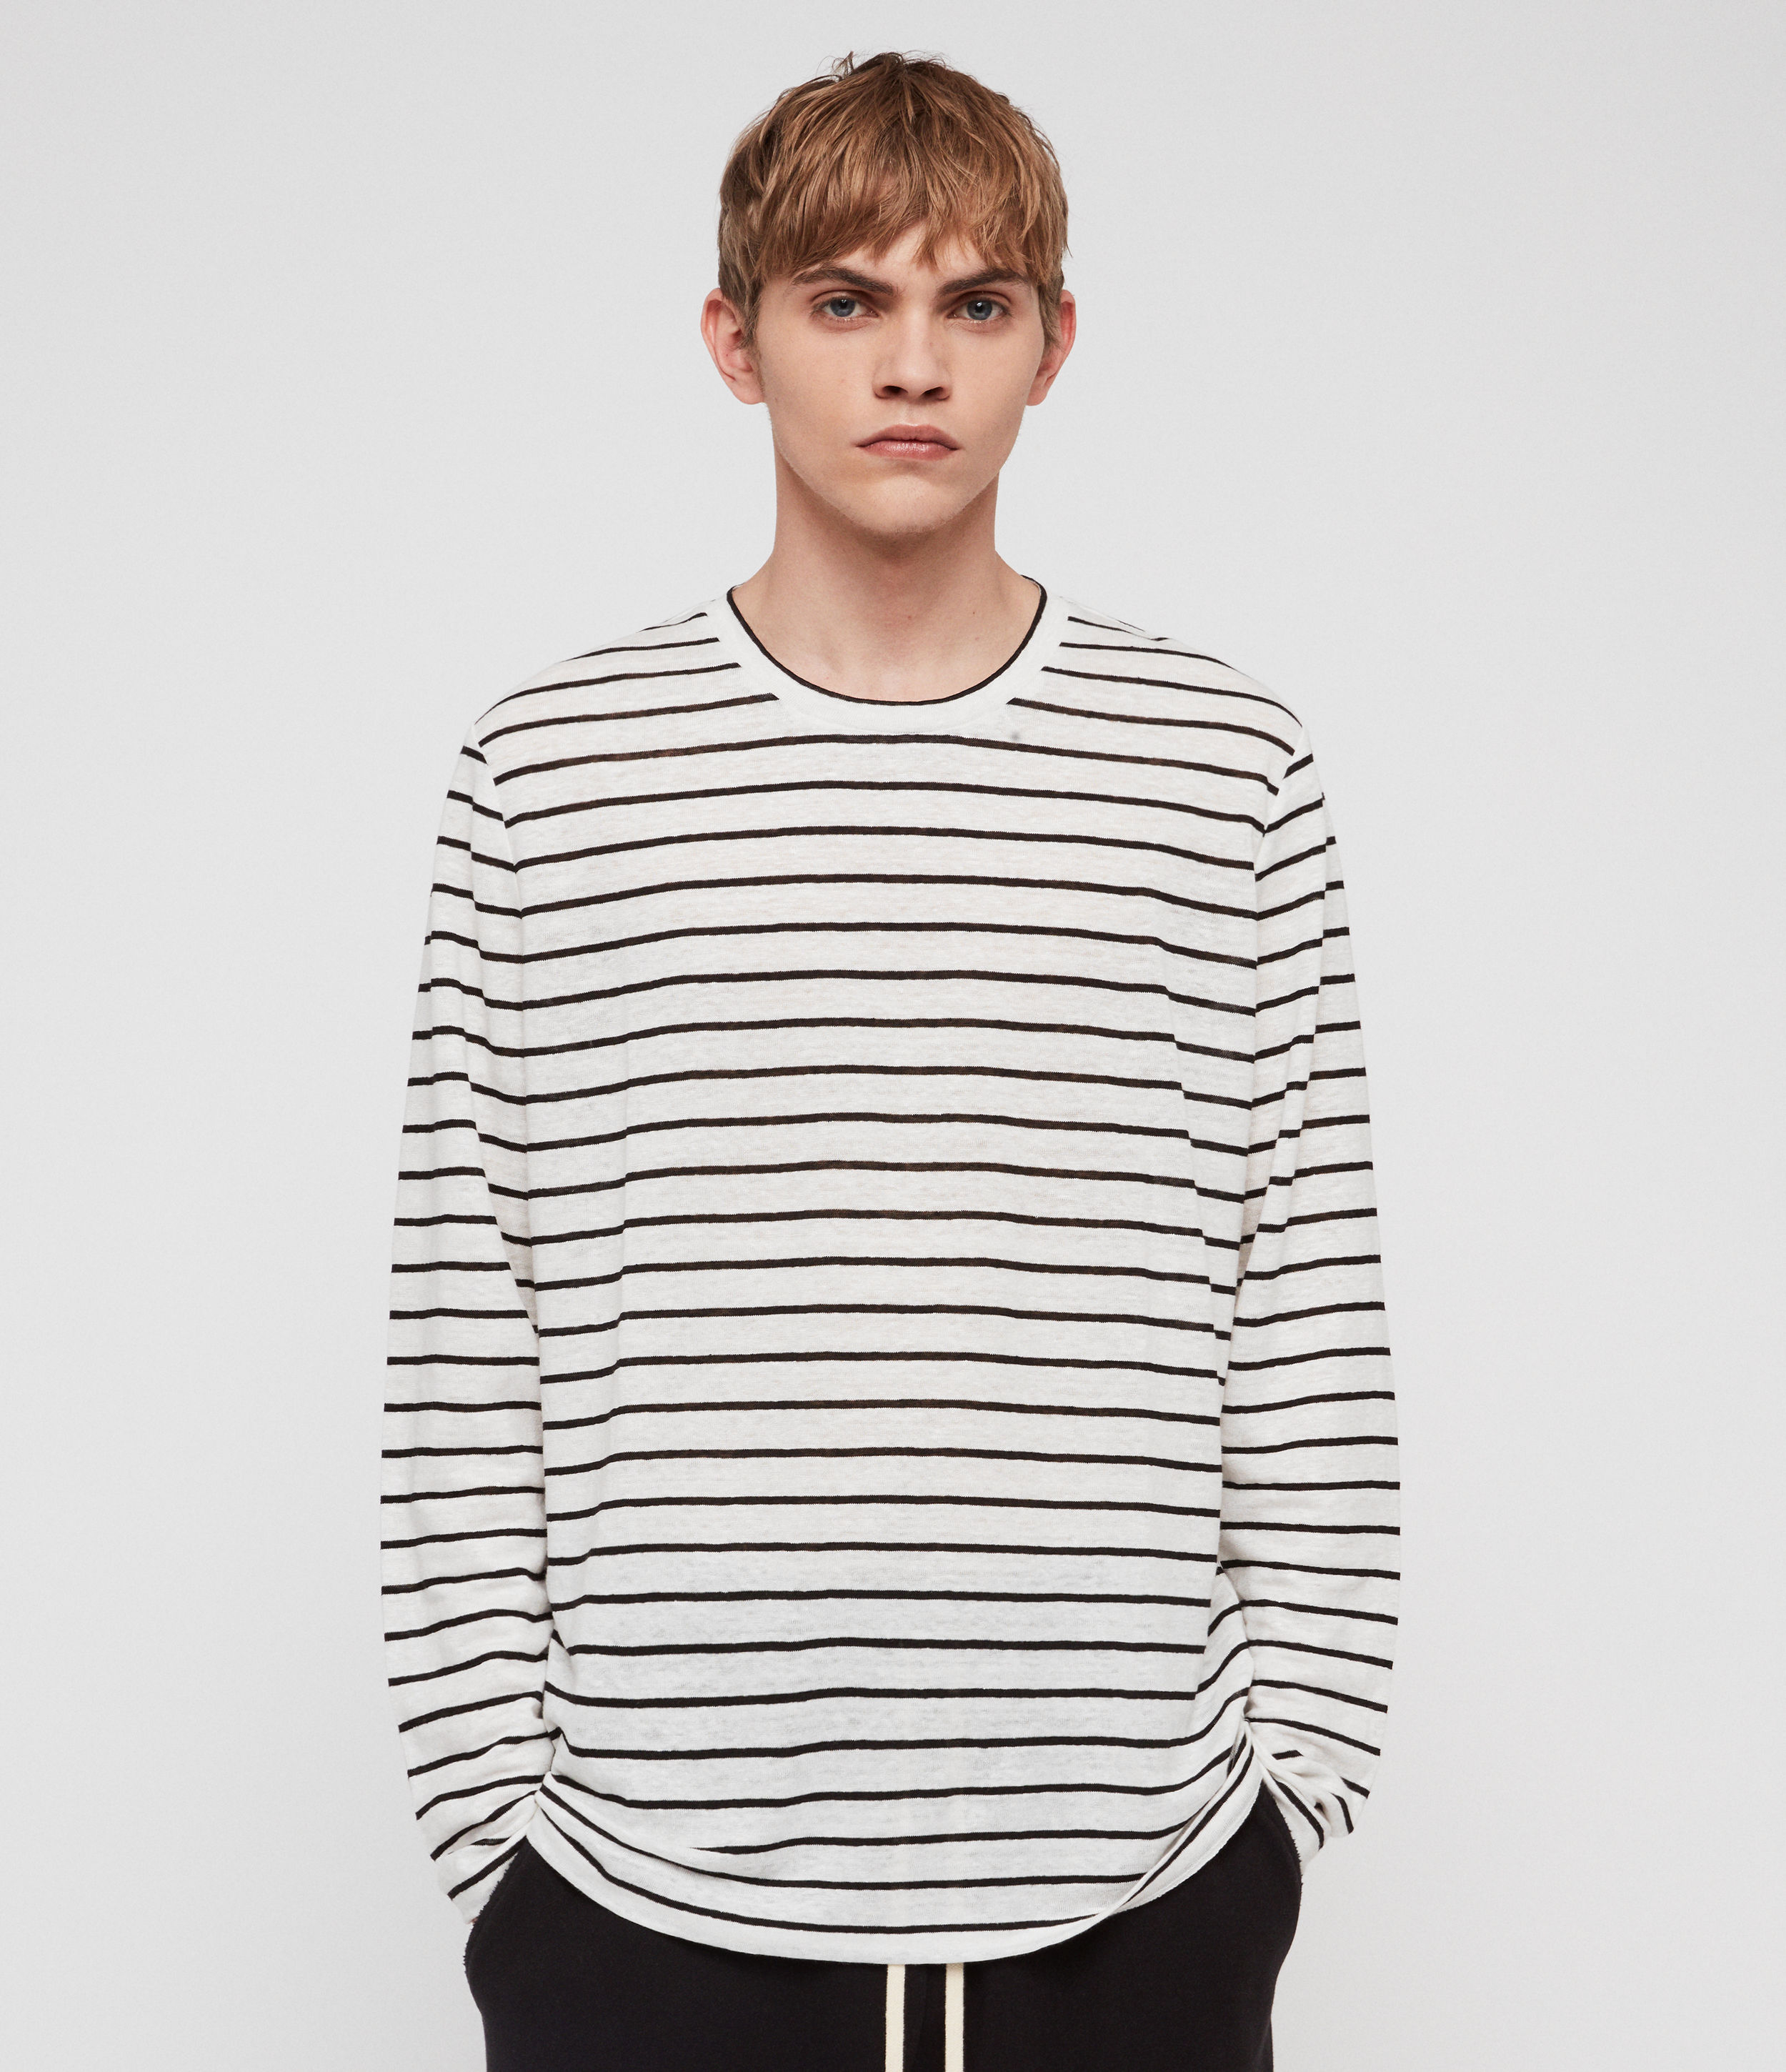 AllSaints Men's Linen Stripe Lightweight Ludo Long Sleeve Crew T-shirt, White and Black, Size: L